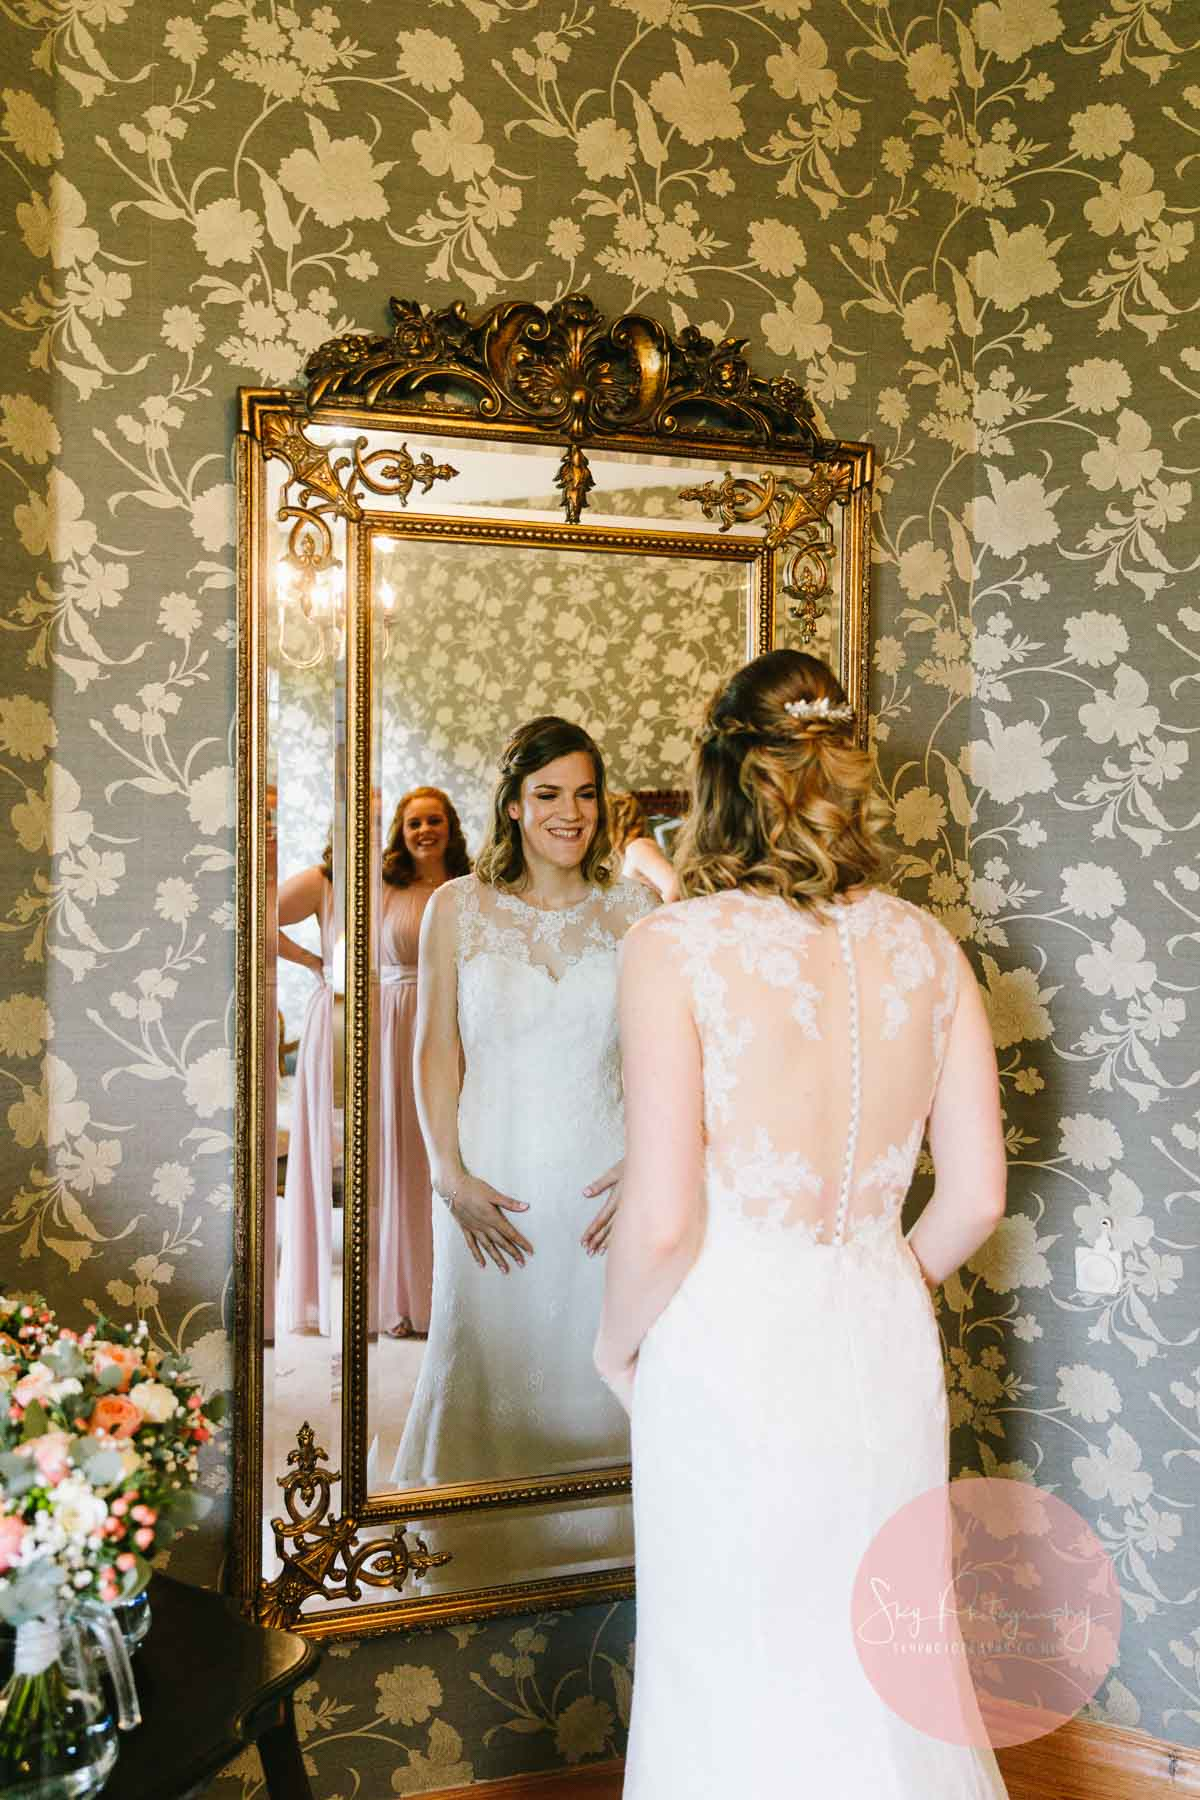 Bride admiring herself in the mirror